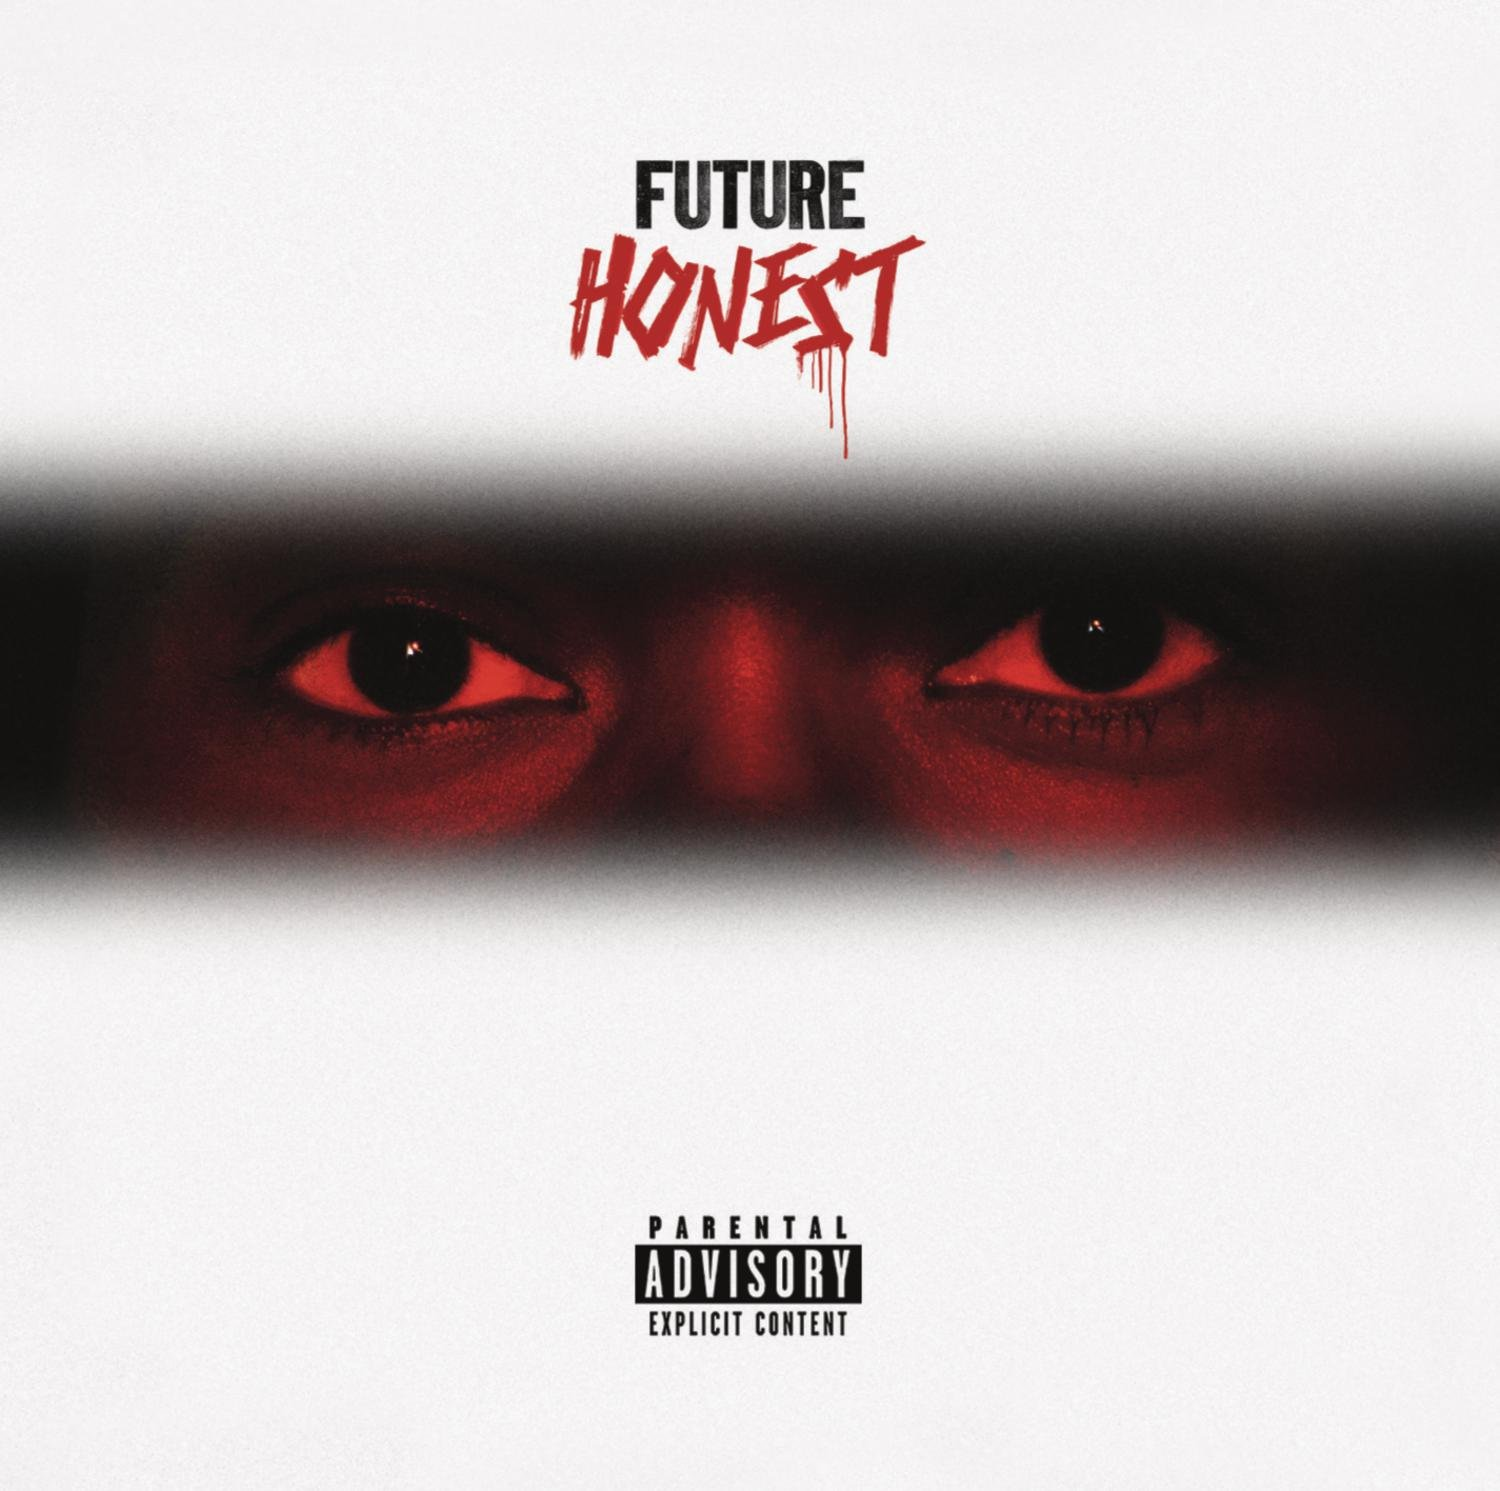 download future honest clean version